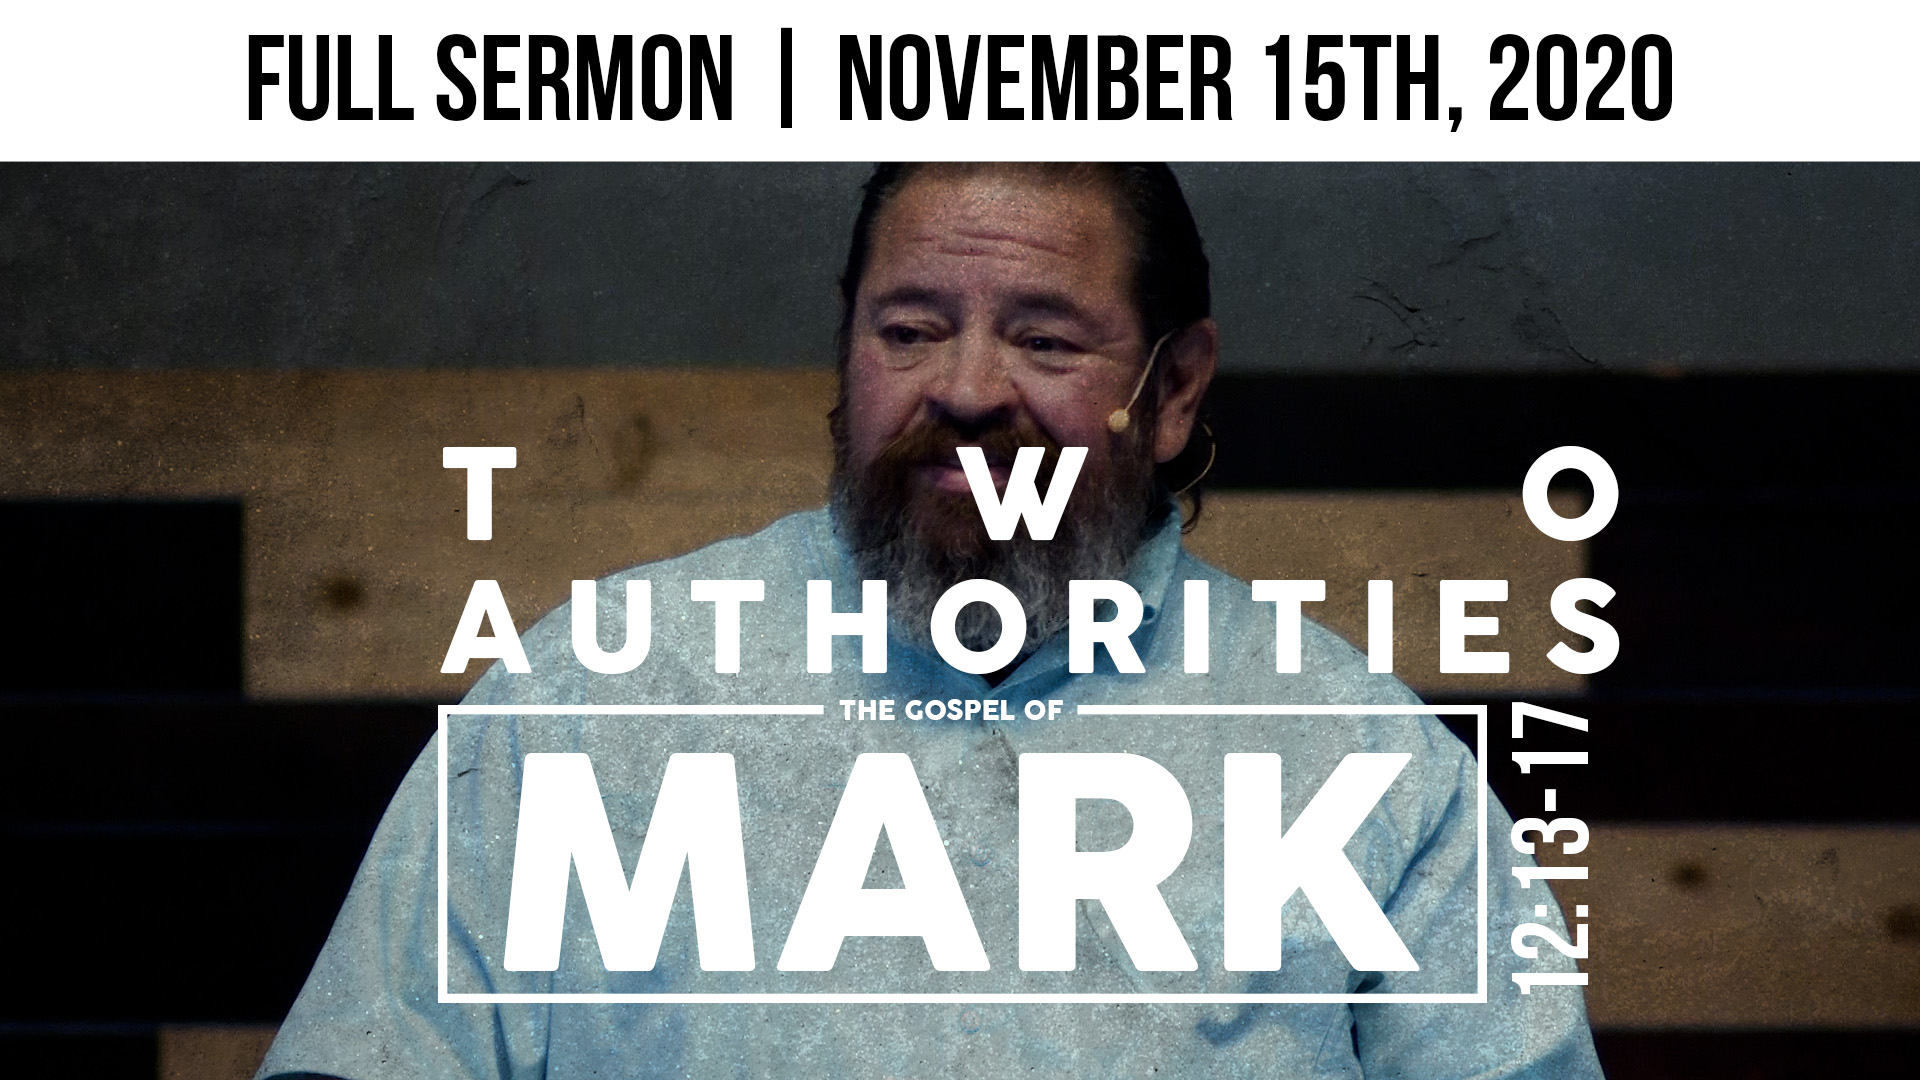 Two Authorities | Mark 12:13-17 Image